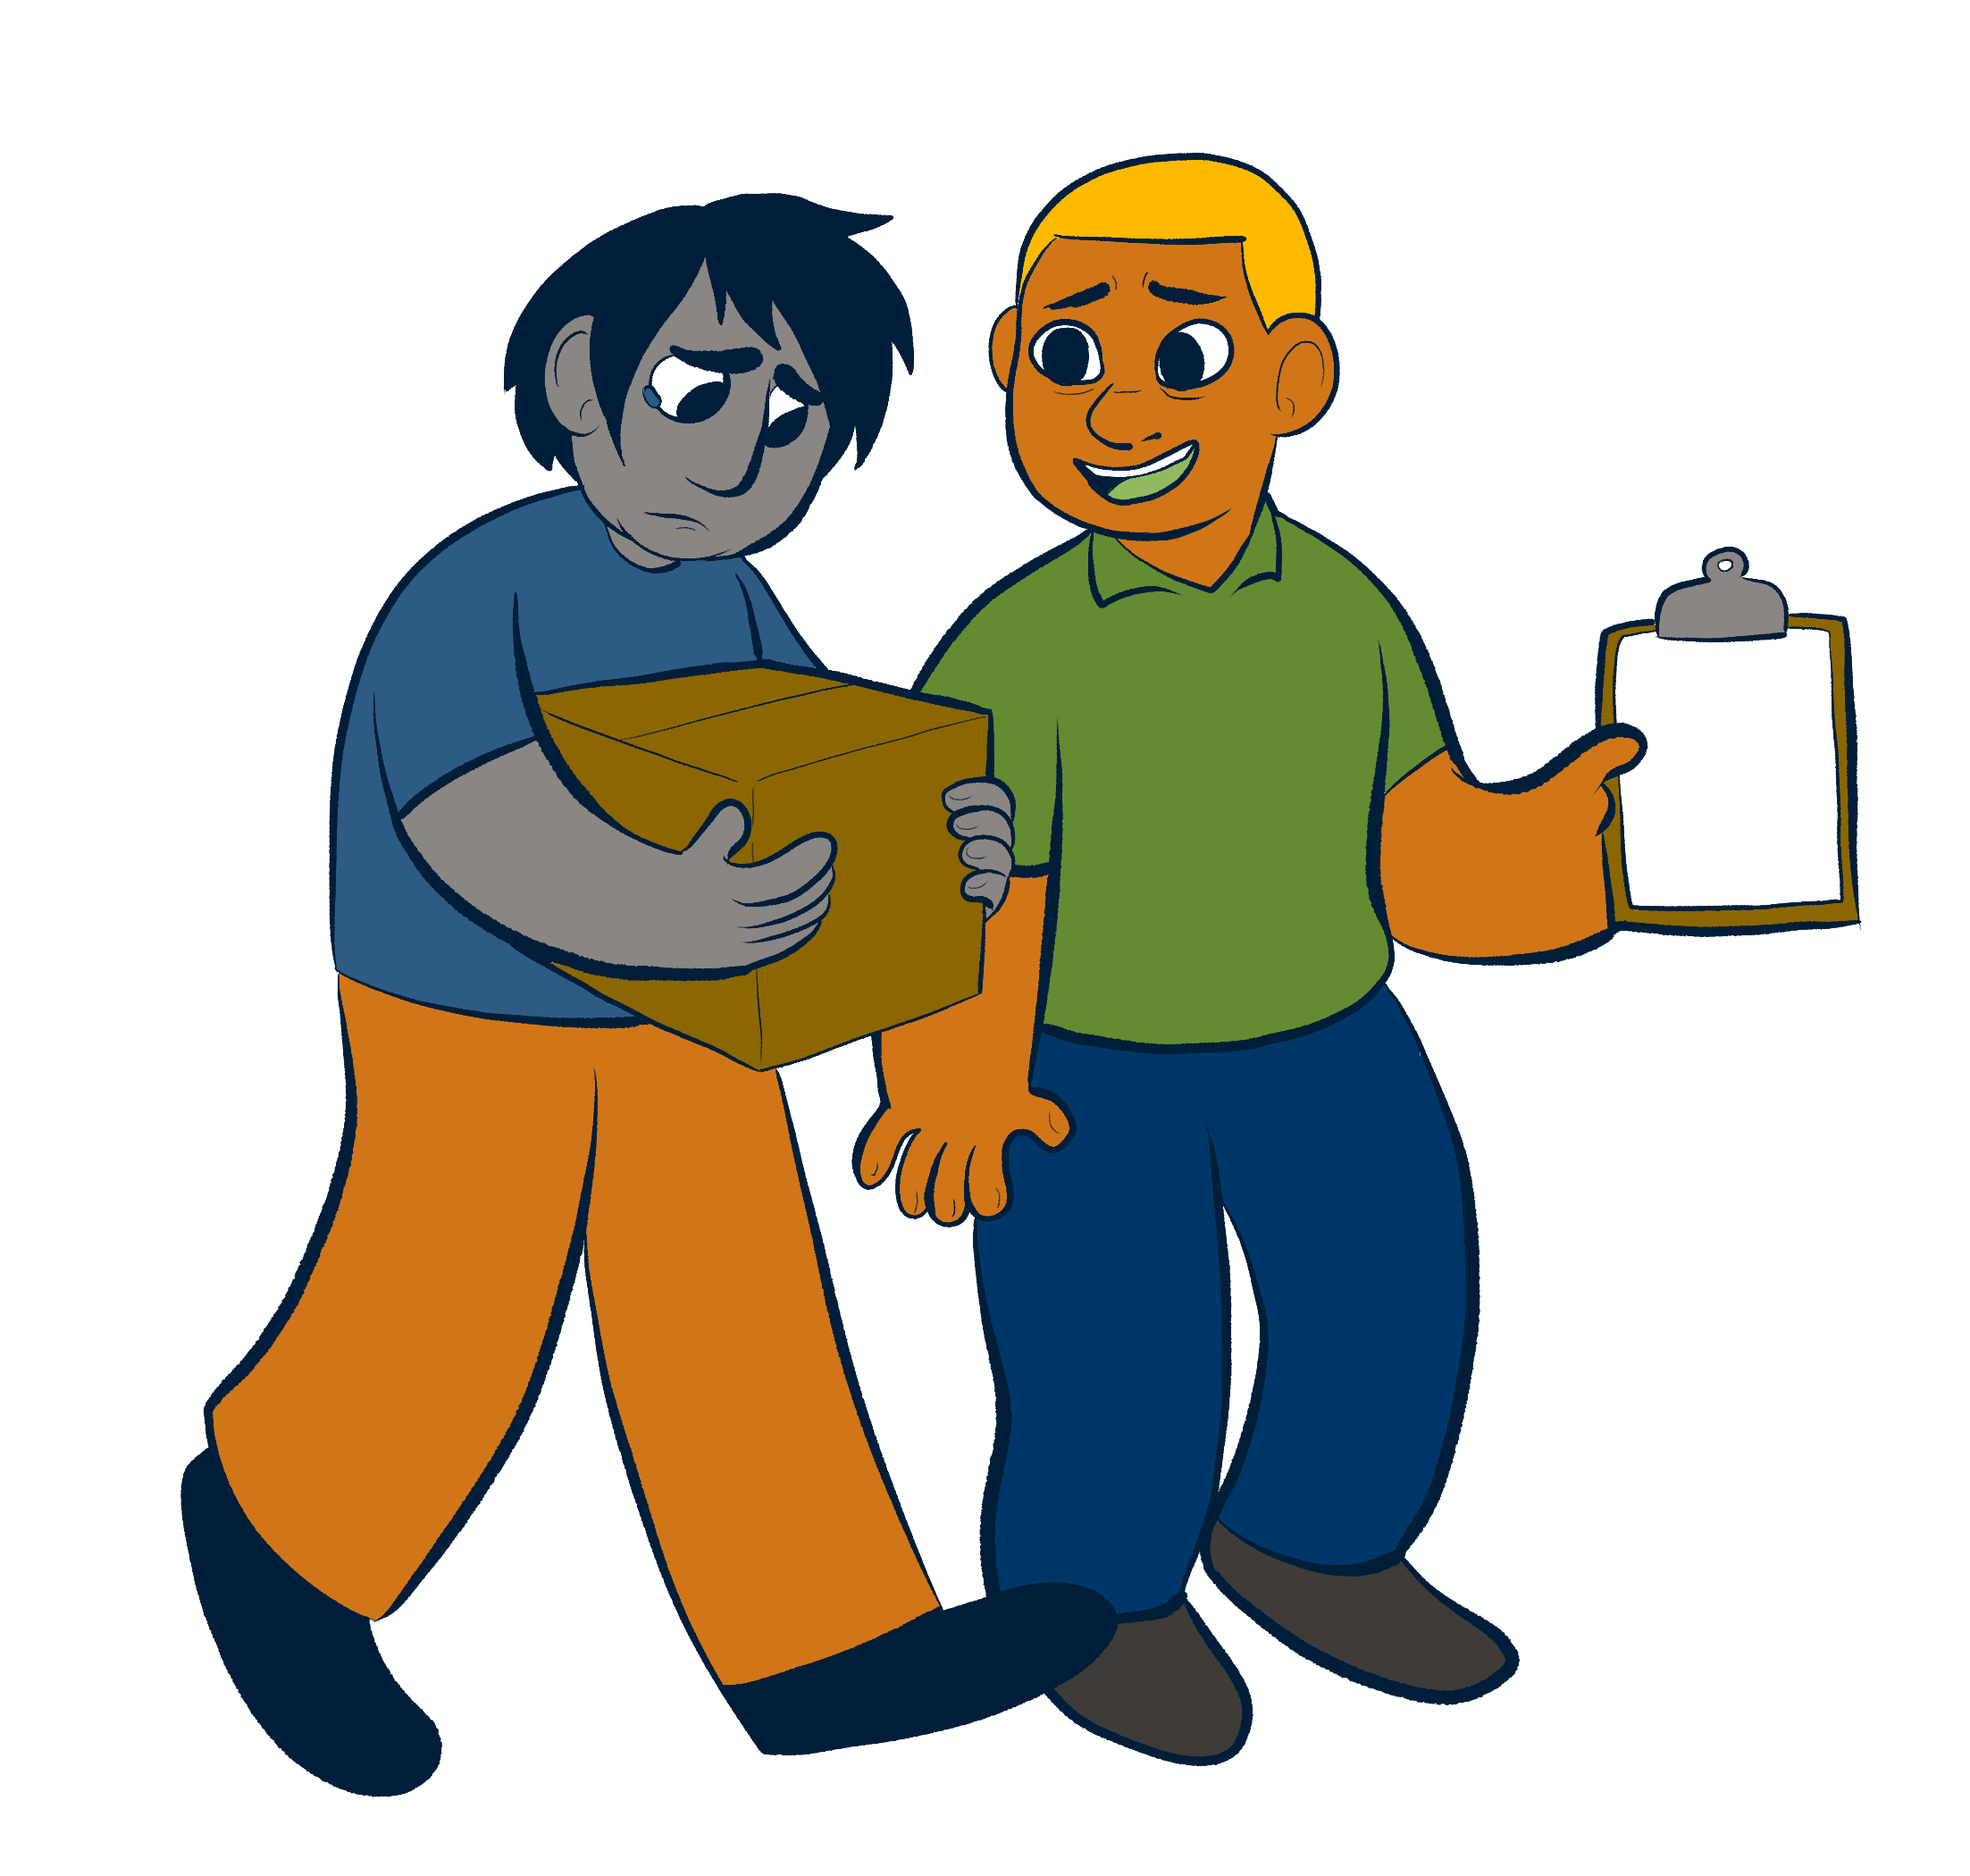 An illustration of two people, the older of the two has their hand on the younger person's shoulder.